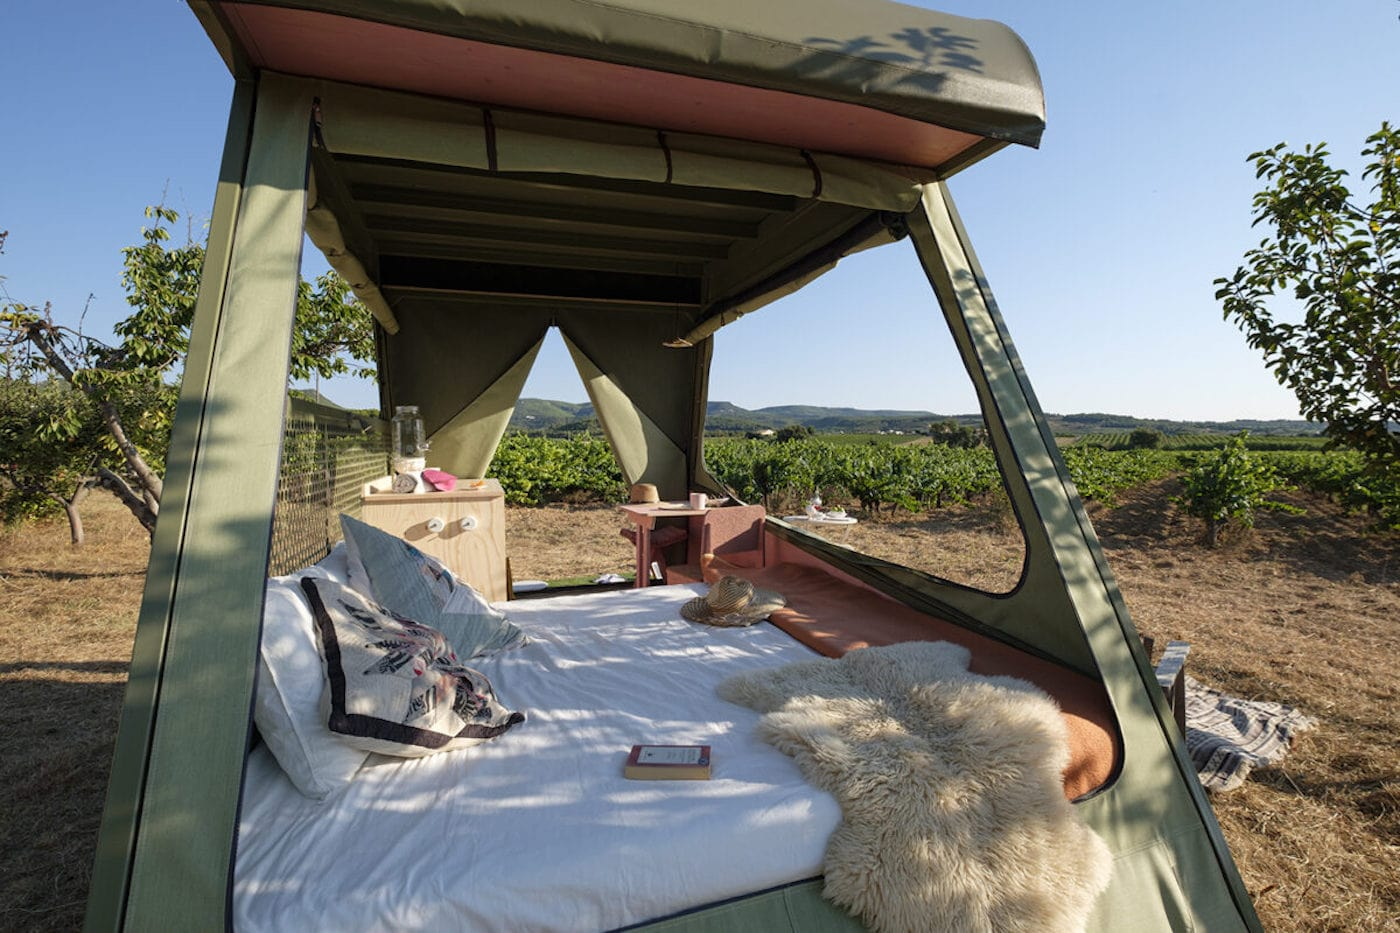 Queen size bed in off-grid camper with solar and green roof